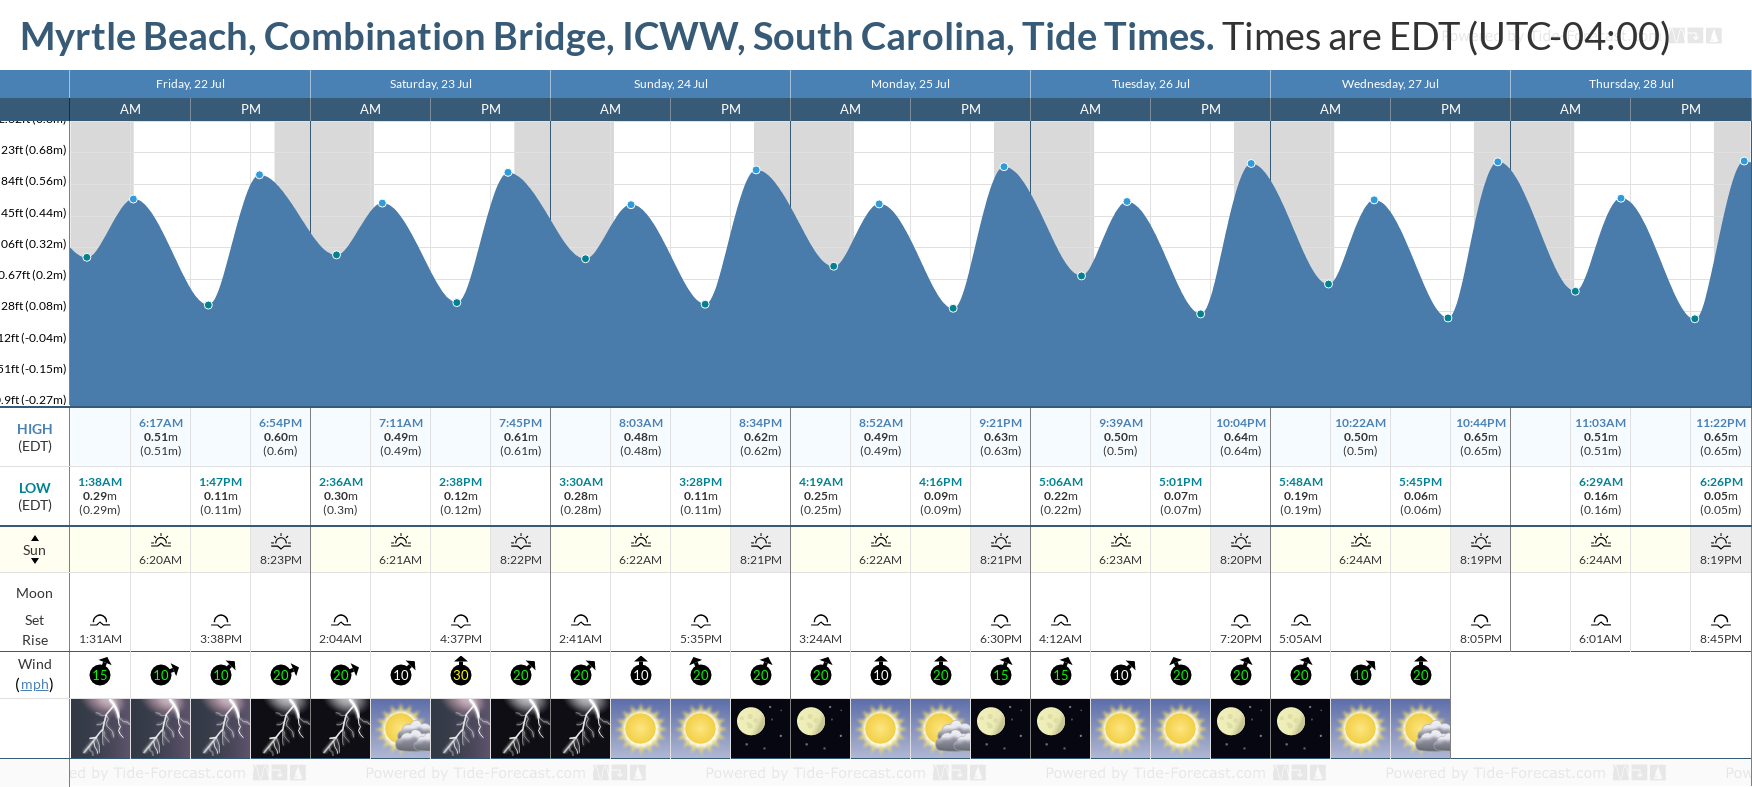 Myrtle Beach, Combination Bridge, ICWW, South Carolina Tide Chart including high and low tide tide times for the next 7 days